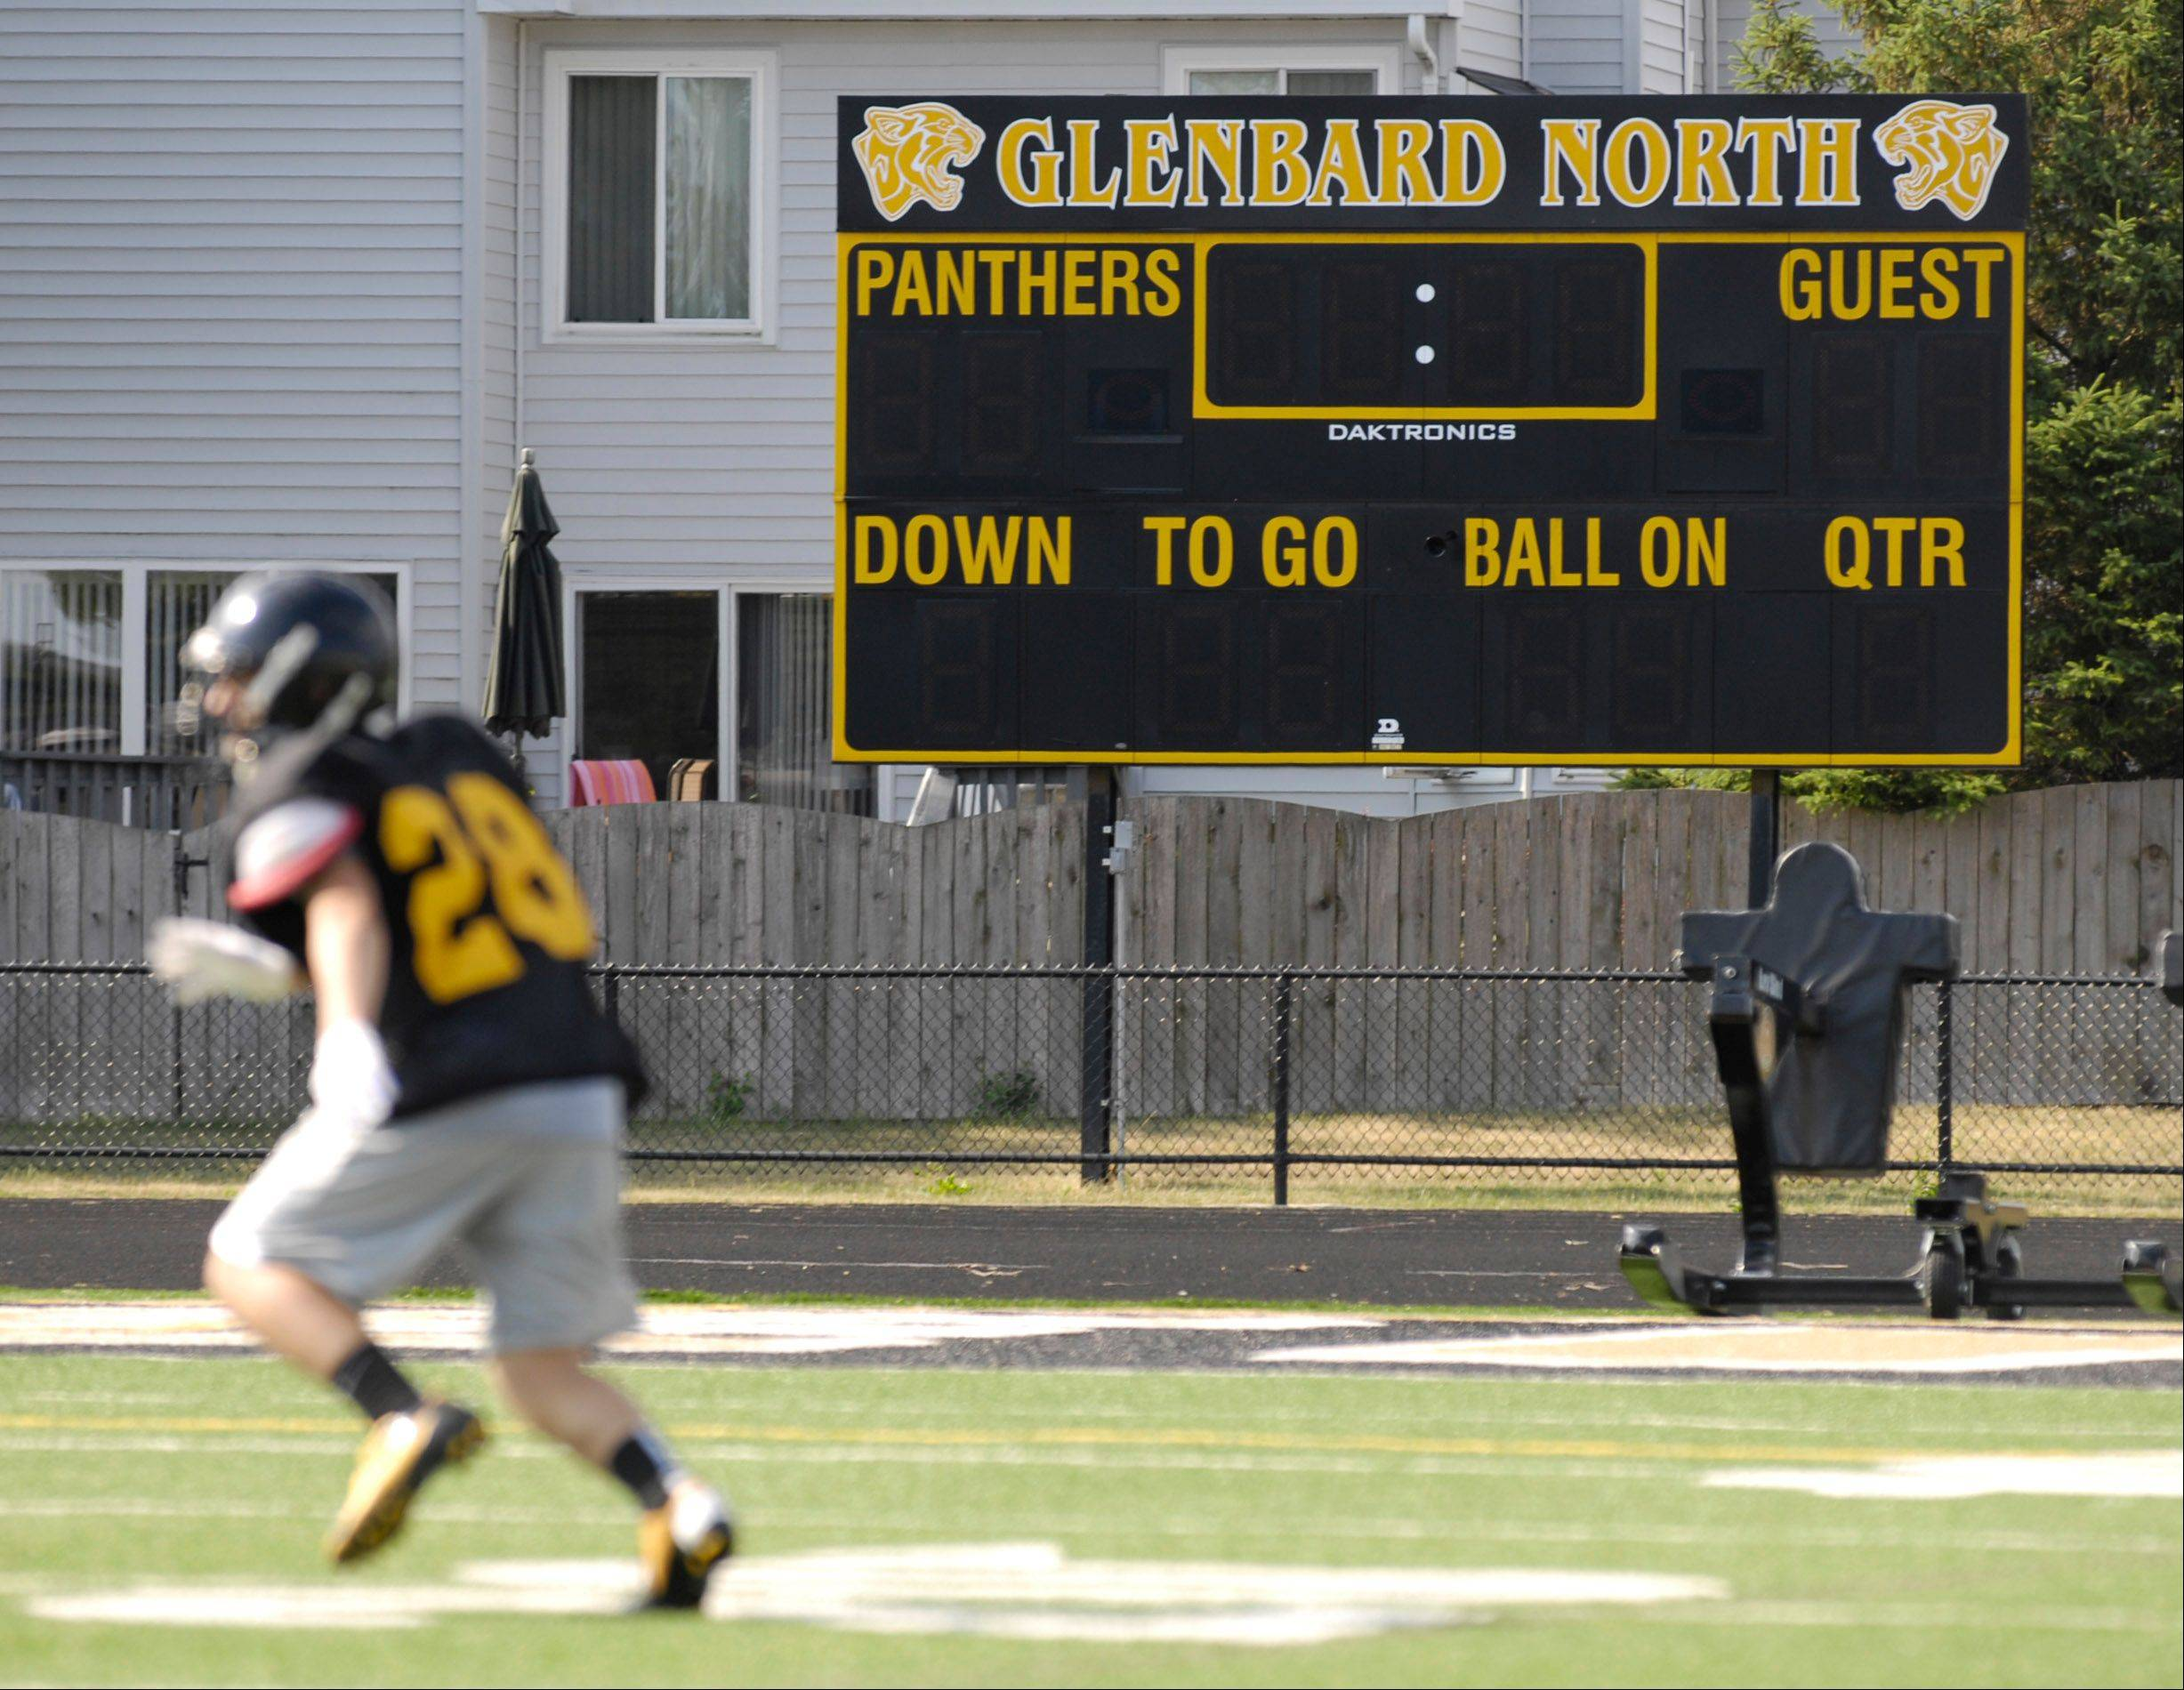 Glenbard's scoreboard advertising deal falls through